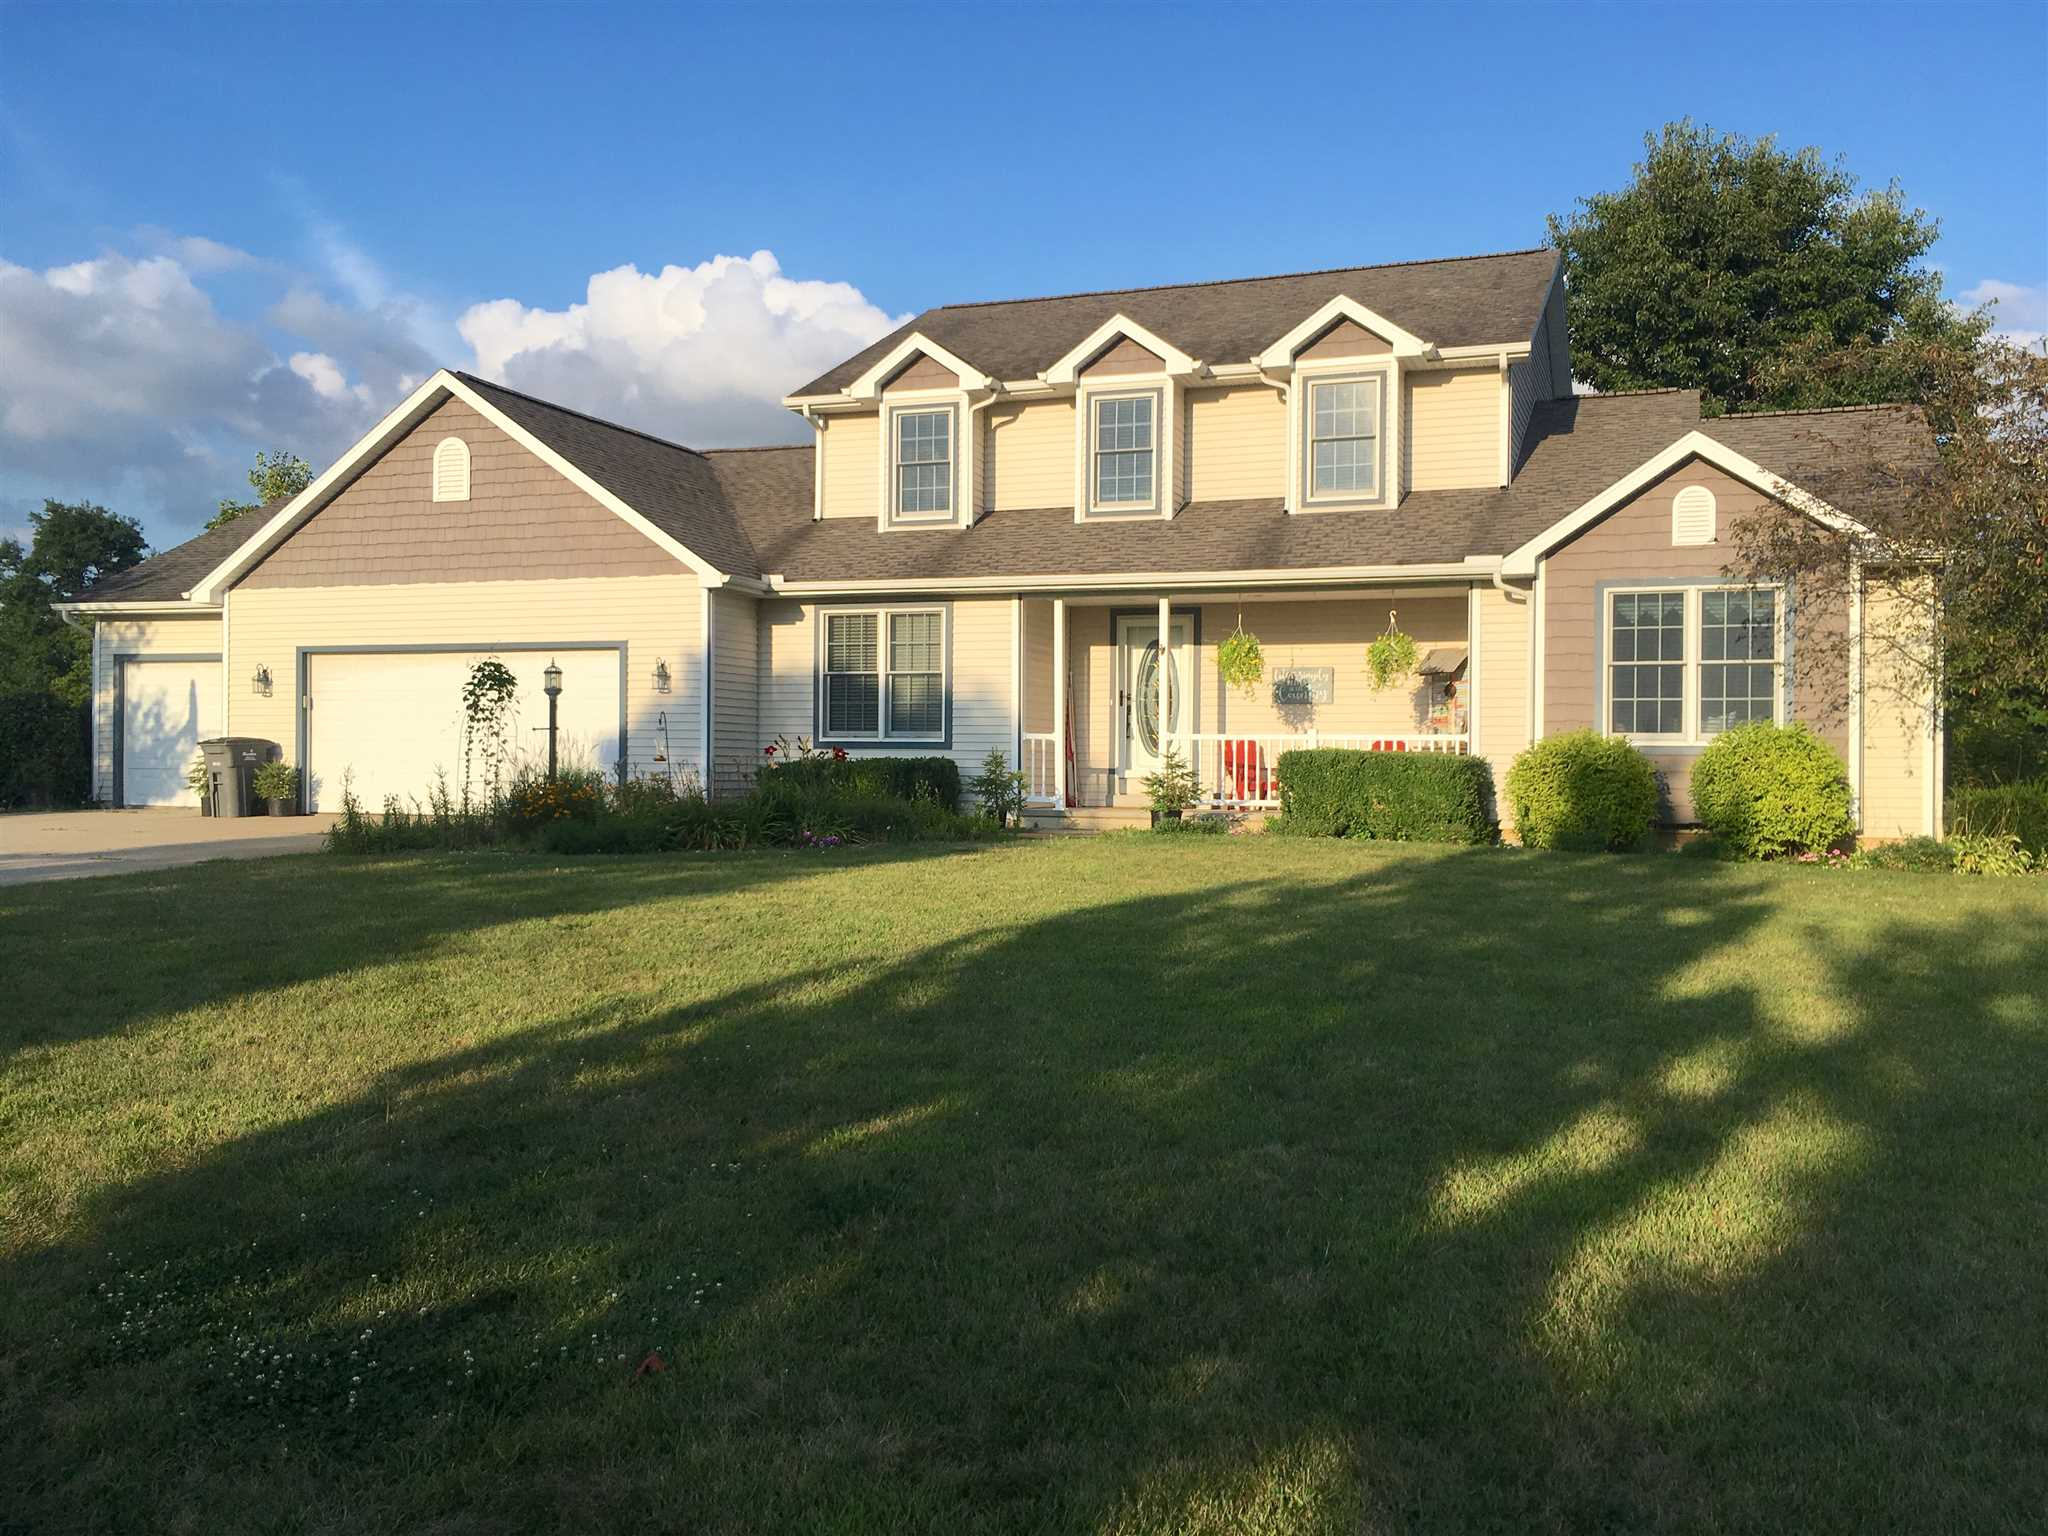 12843 County Road 44, Millersburg, IN 46543